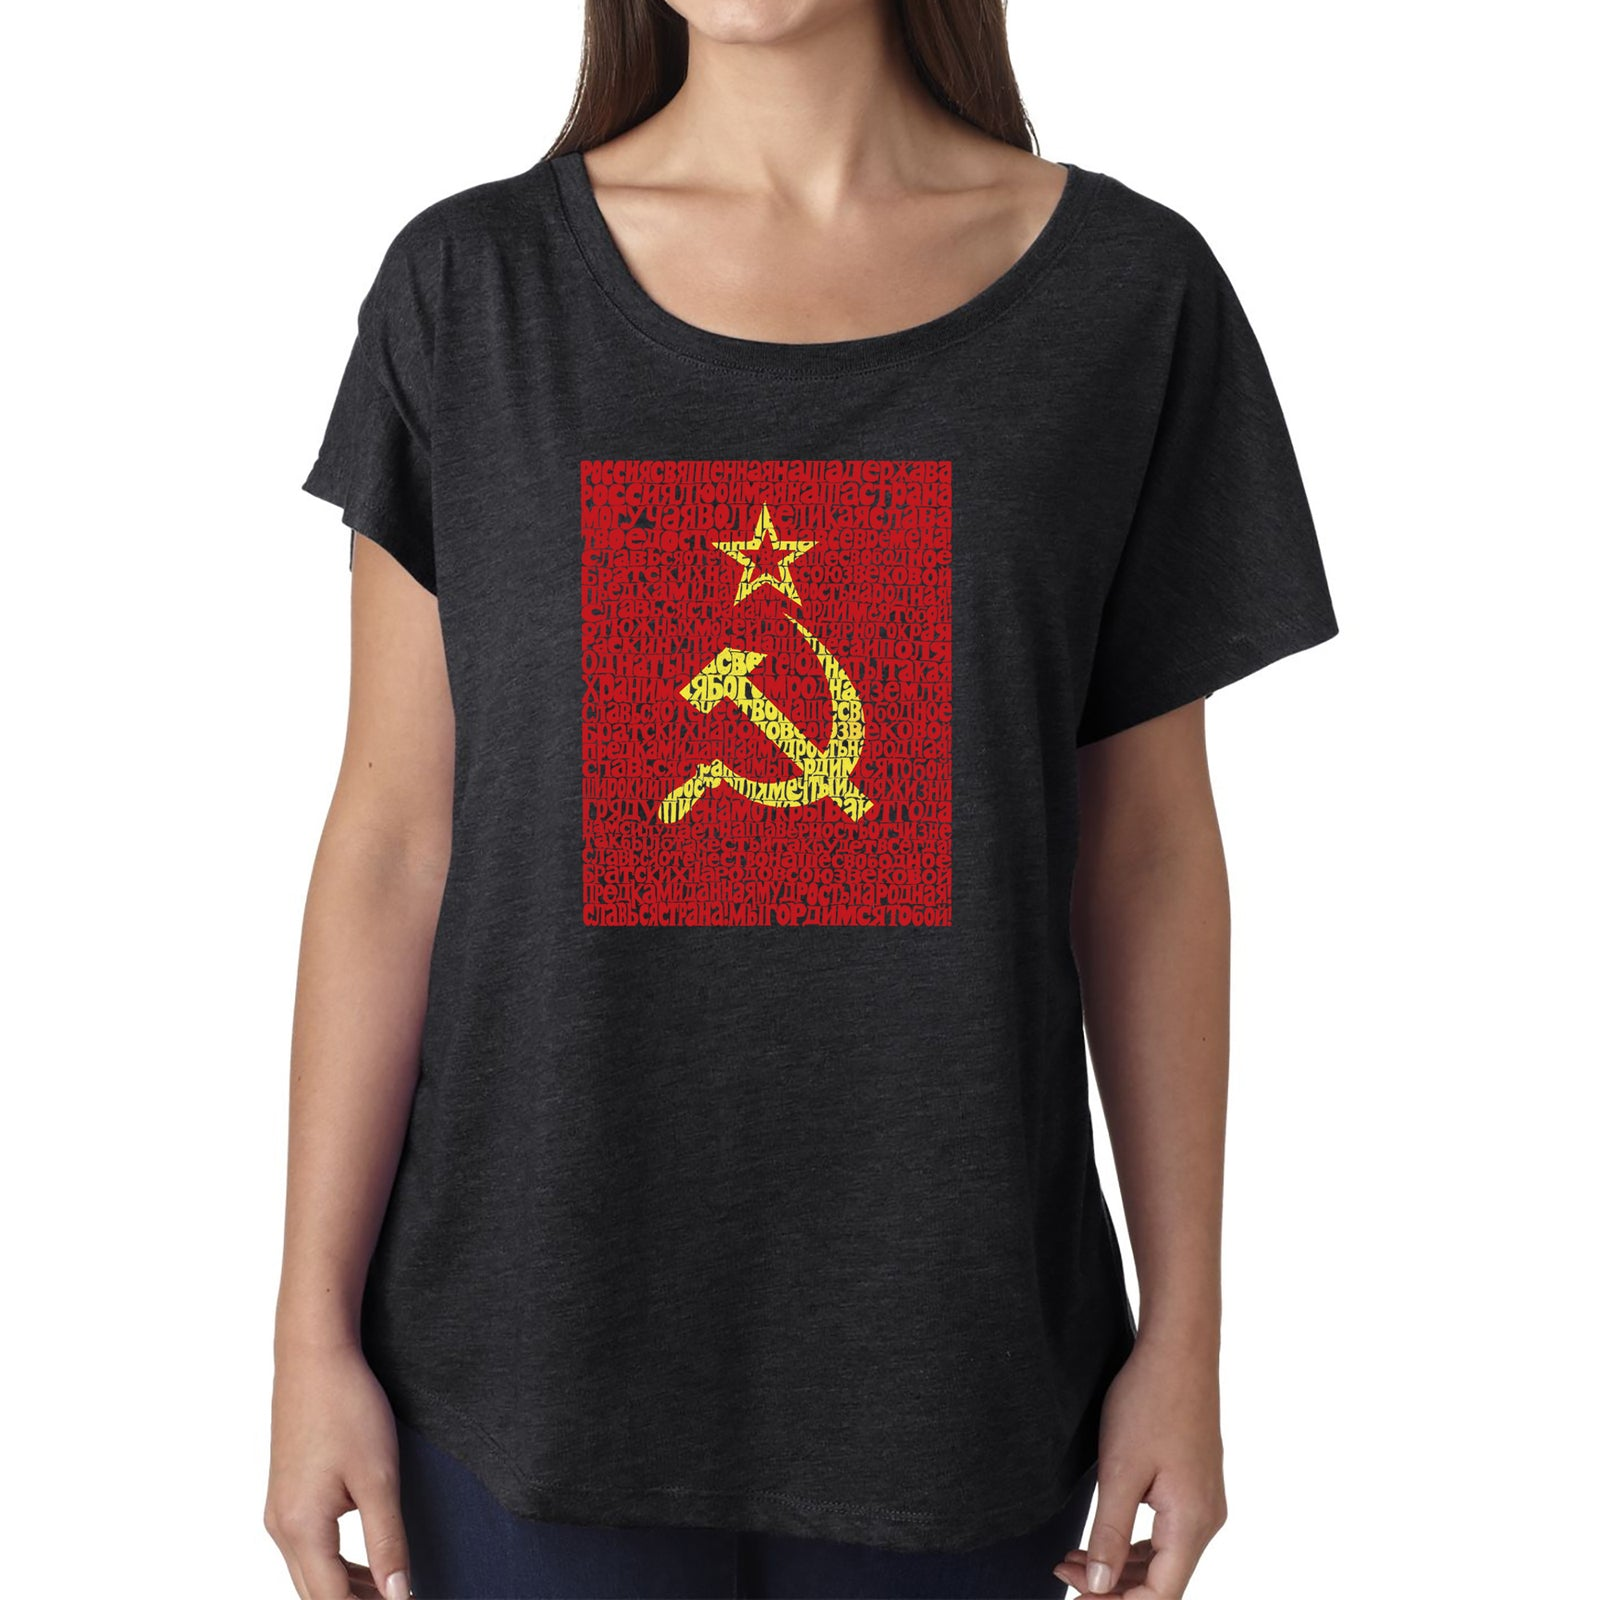 Women's Loose Fit Dolman Cut Word Art Shirt - Lyrics to the Soviet National Anthem